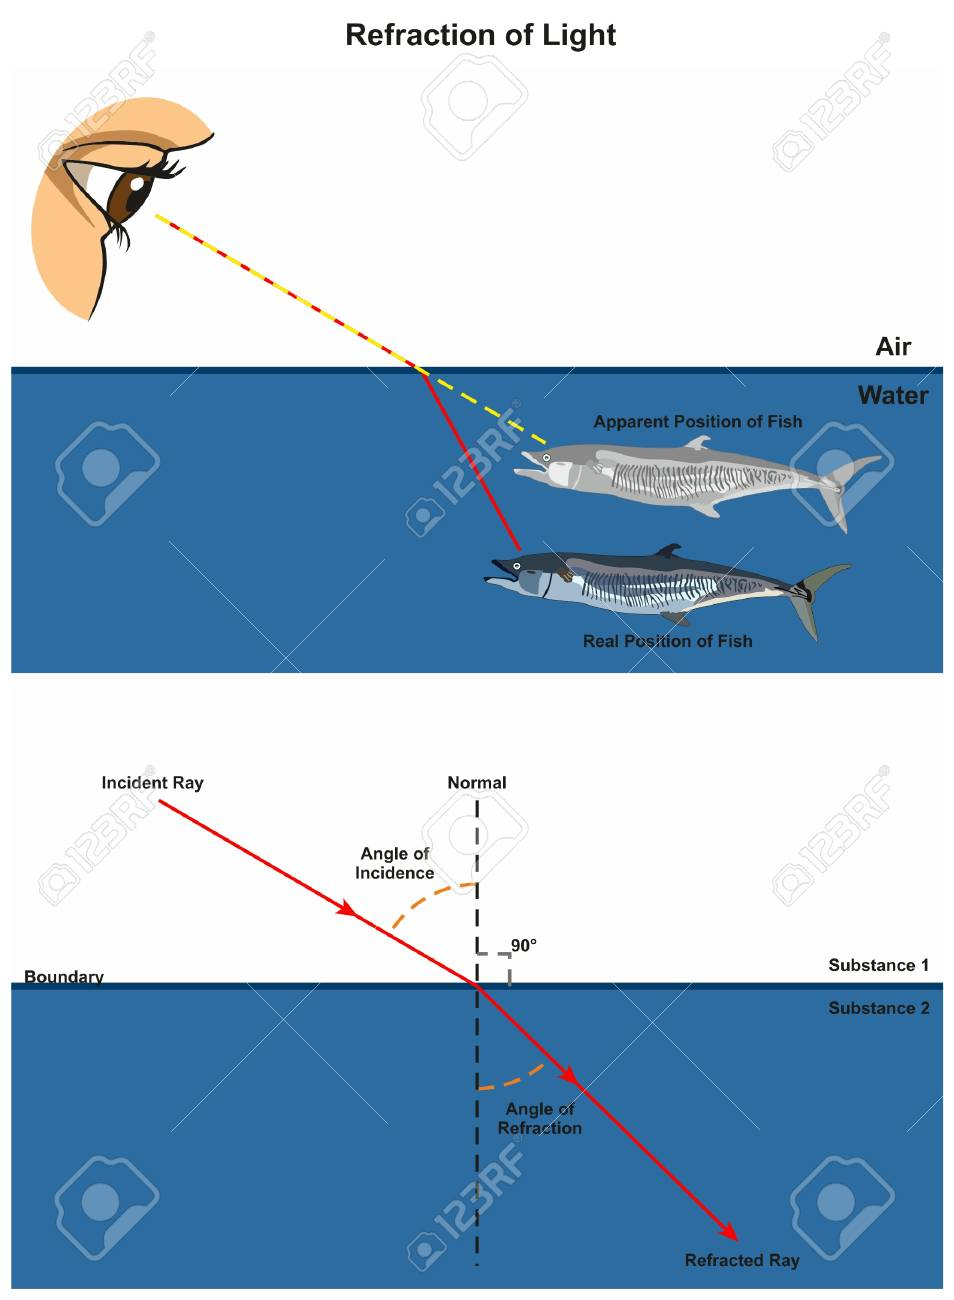 hight resolution of refraction of light infographic diagram with an example of human eye looking into fish in water